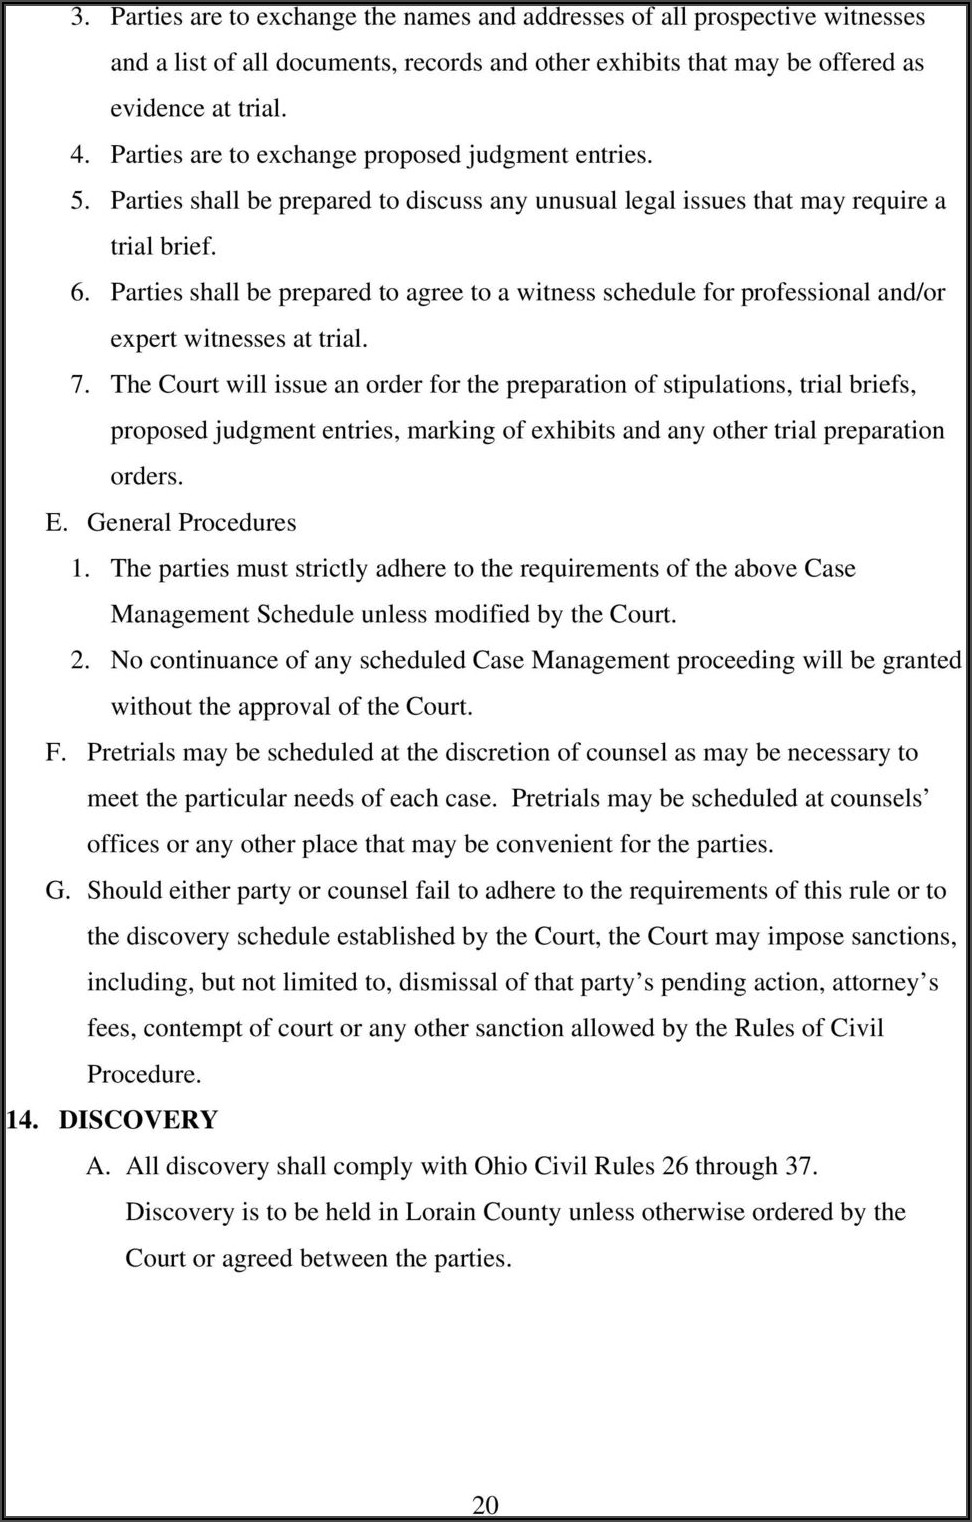 Lorain County Court Forms